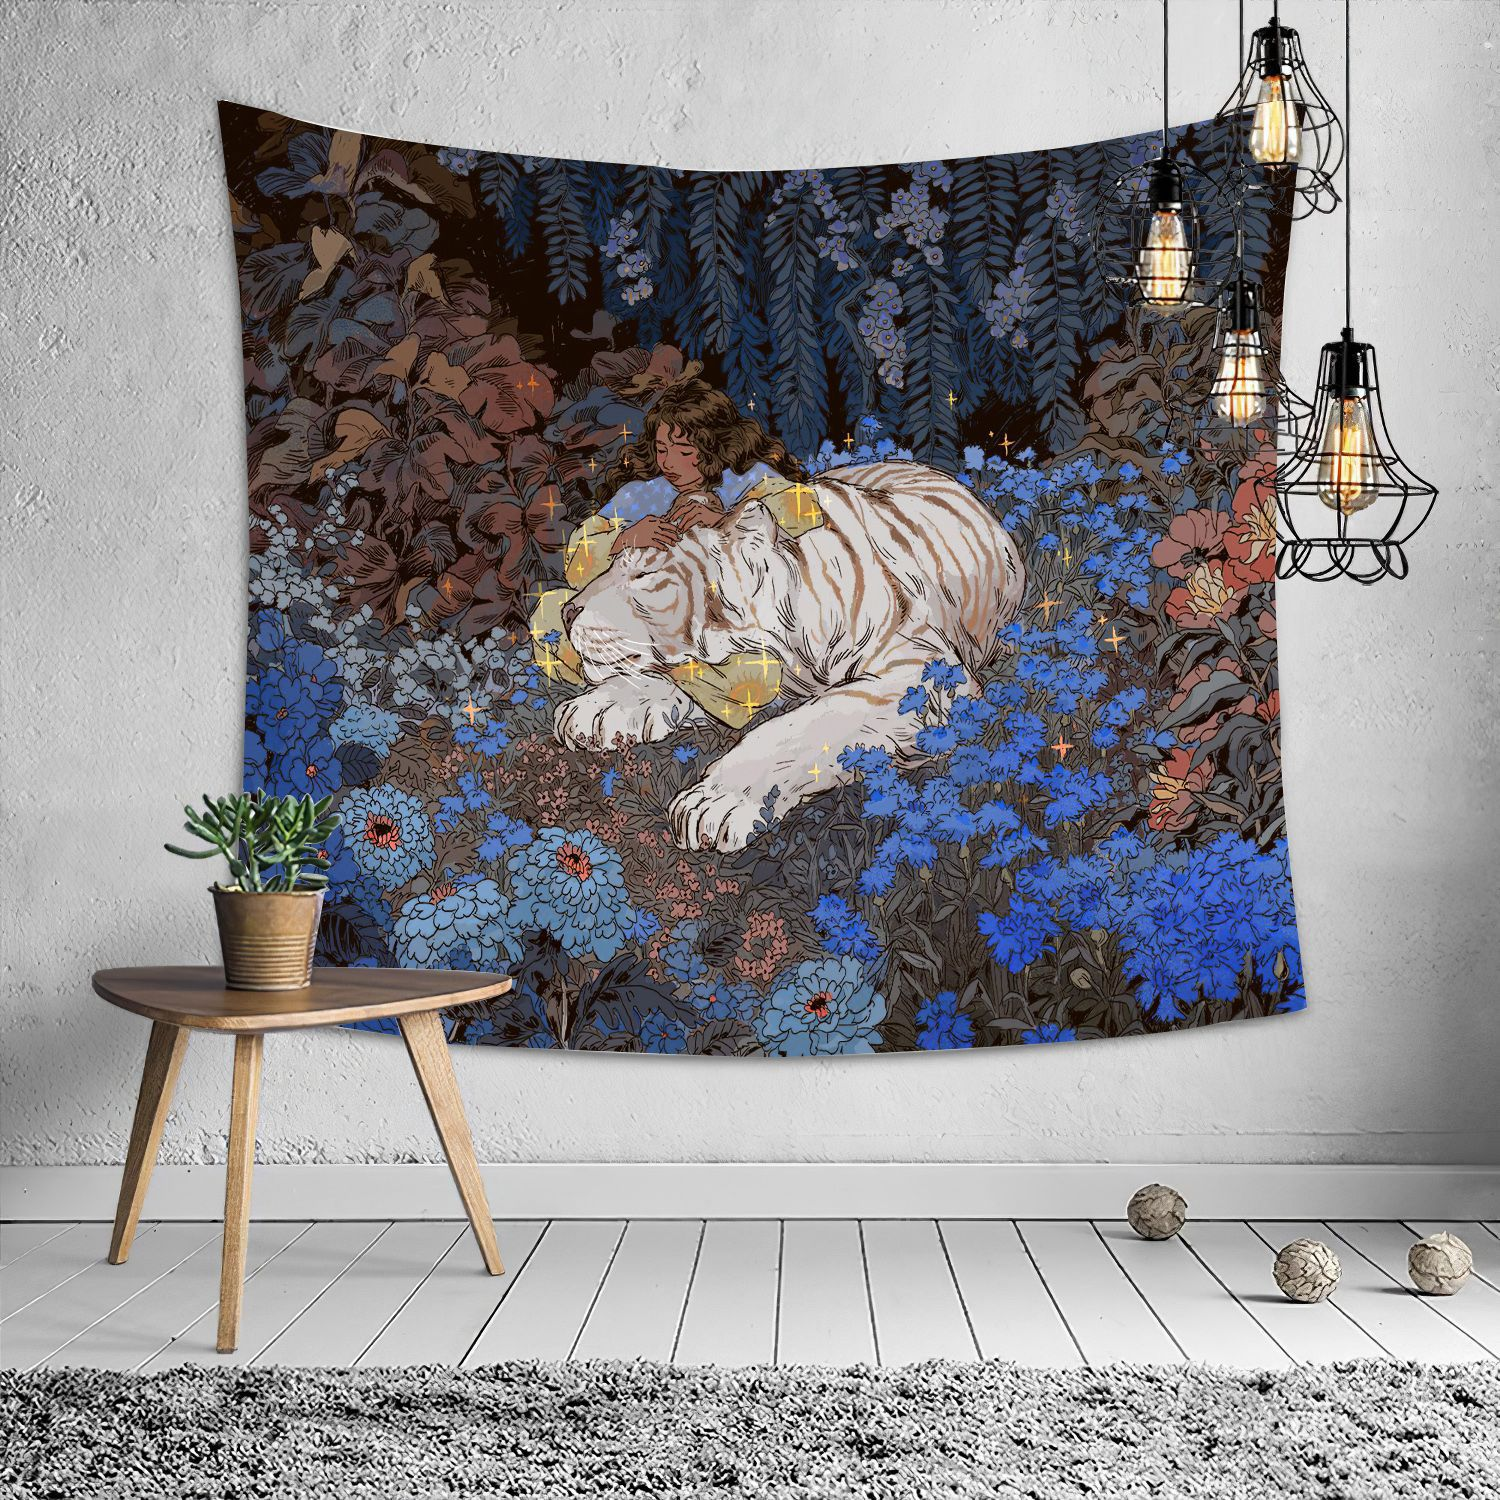 Psychedelic big tapestry girl tiger tapestry boho style tapestry home wall bedroom decoration print blanket